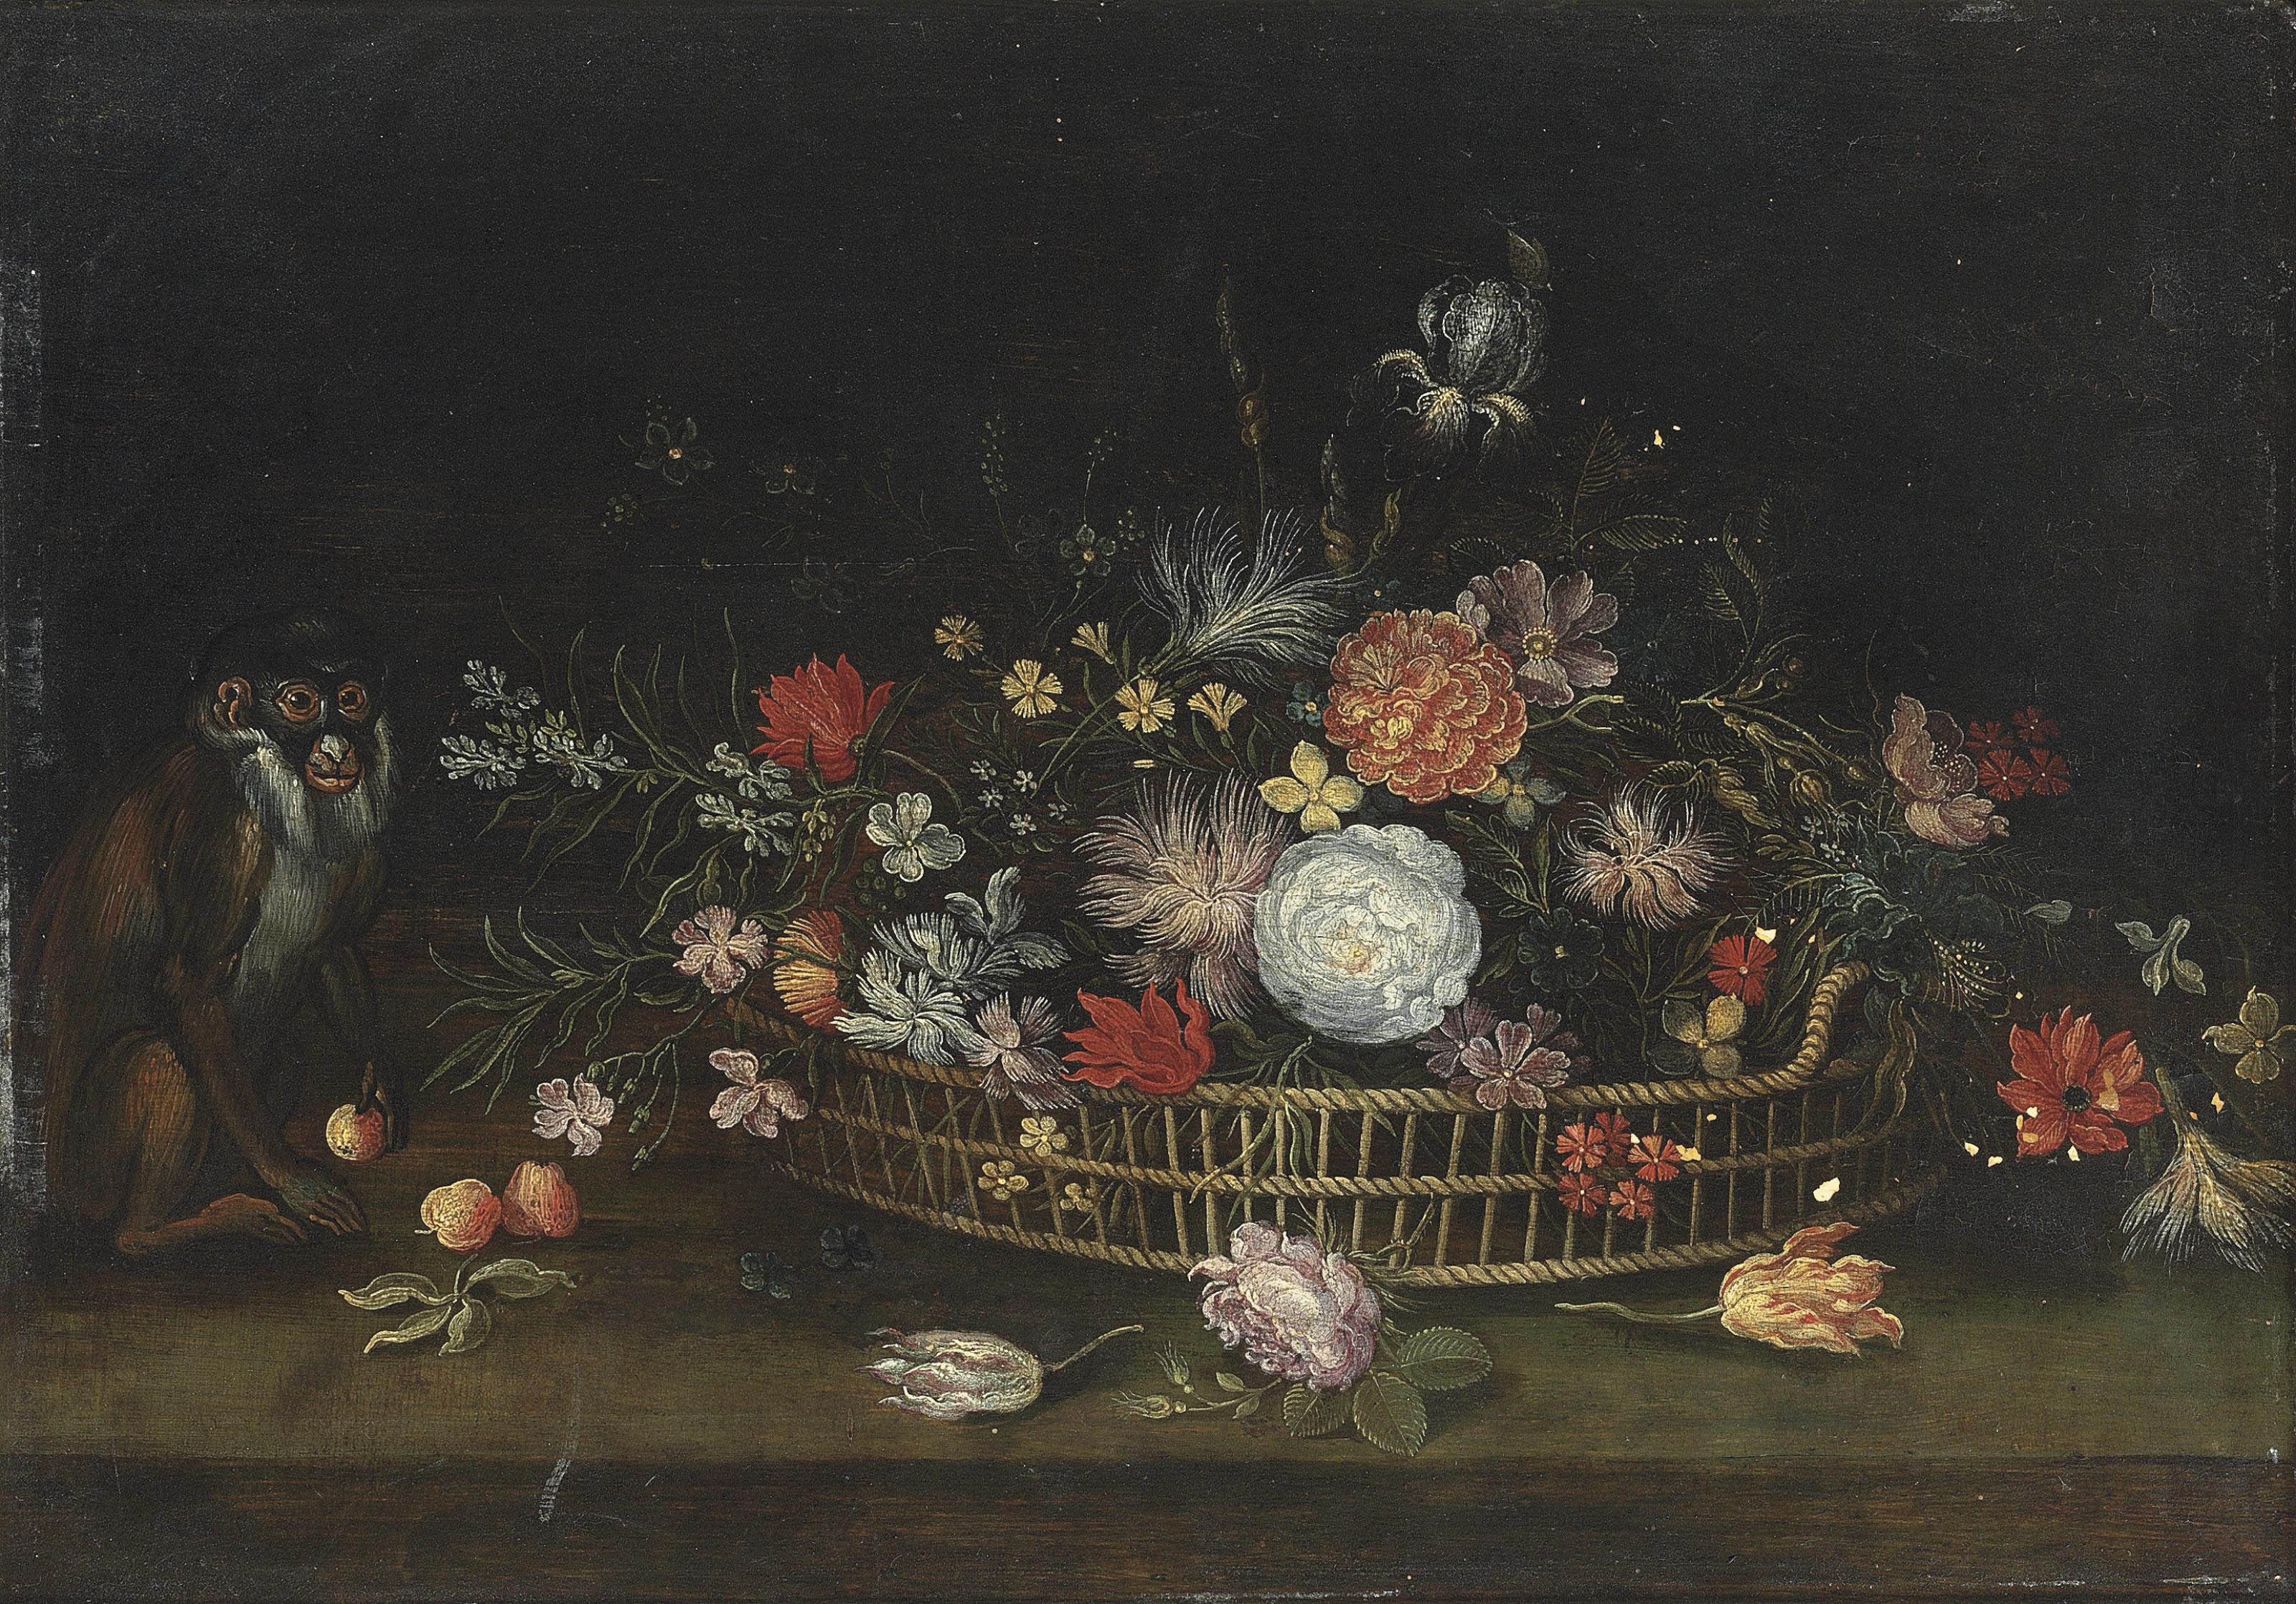 Roses, tulips, carnations and other flowers in a woven basket, and a monkey holding an apple, on a stone ledge